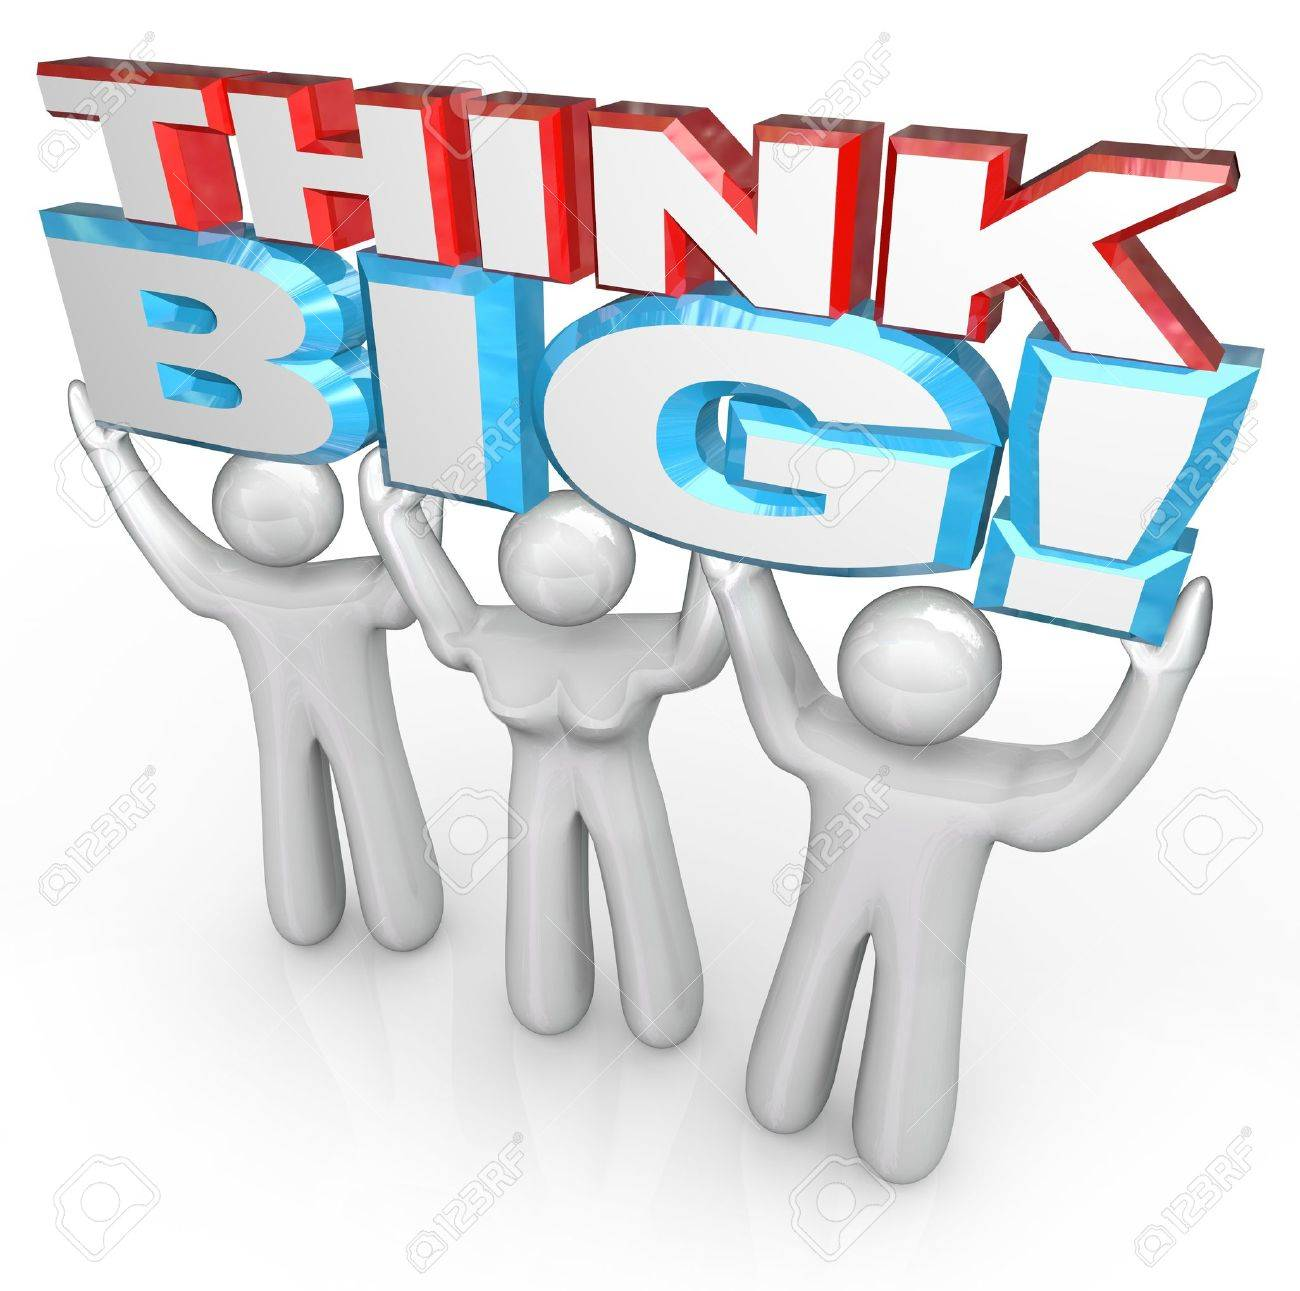 A team of people lift the words Think Big to symbolize achieving great success by setting your sights high and brainstorming huge ideas Stock Photo - 12844682